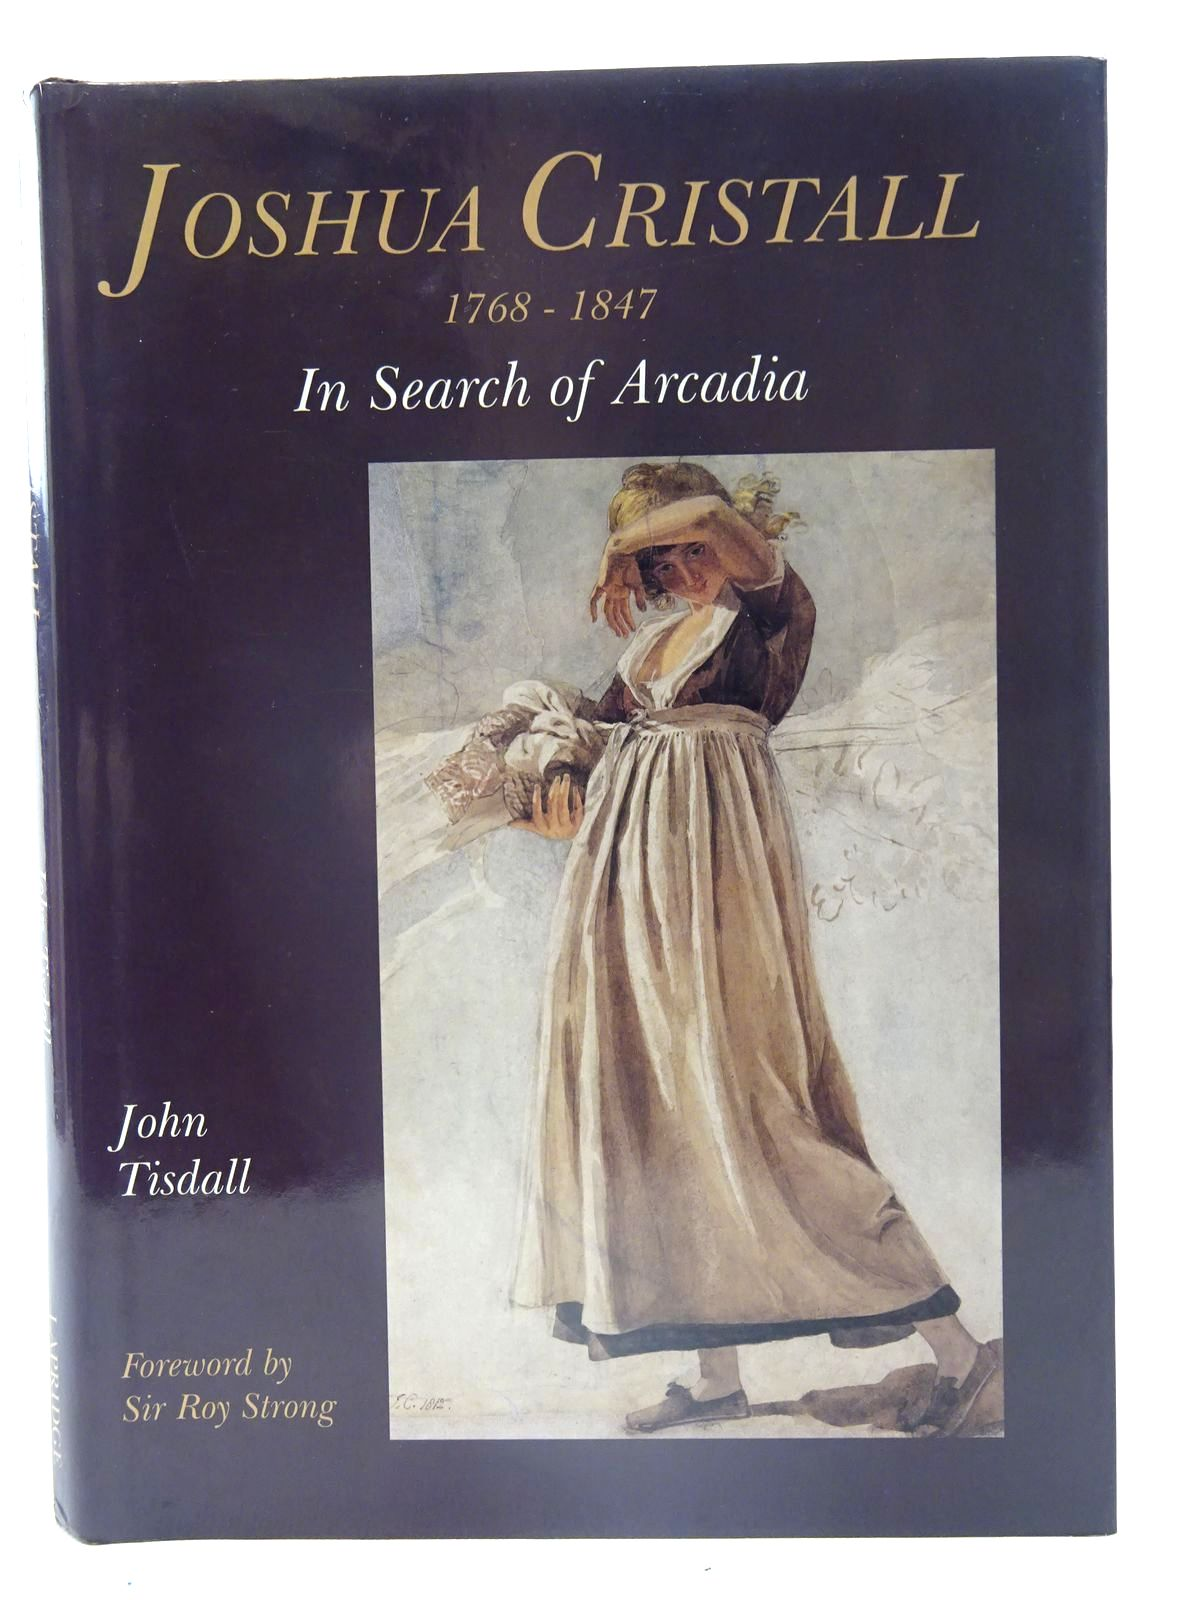 Photo of JOSHUA CRISTALL 1768-1847 written by Tisdall, John illustrated by Cristall, Joshua published by Lapridge Publications (STOCK CODE: 2126174)  for sale by Stella & Rose's Books